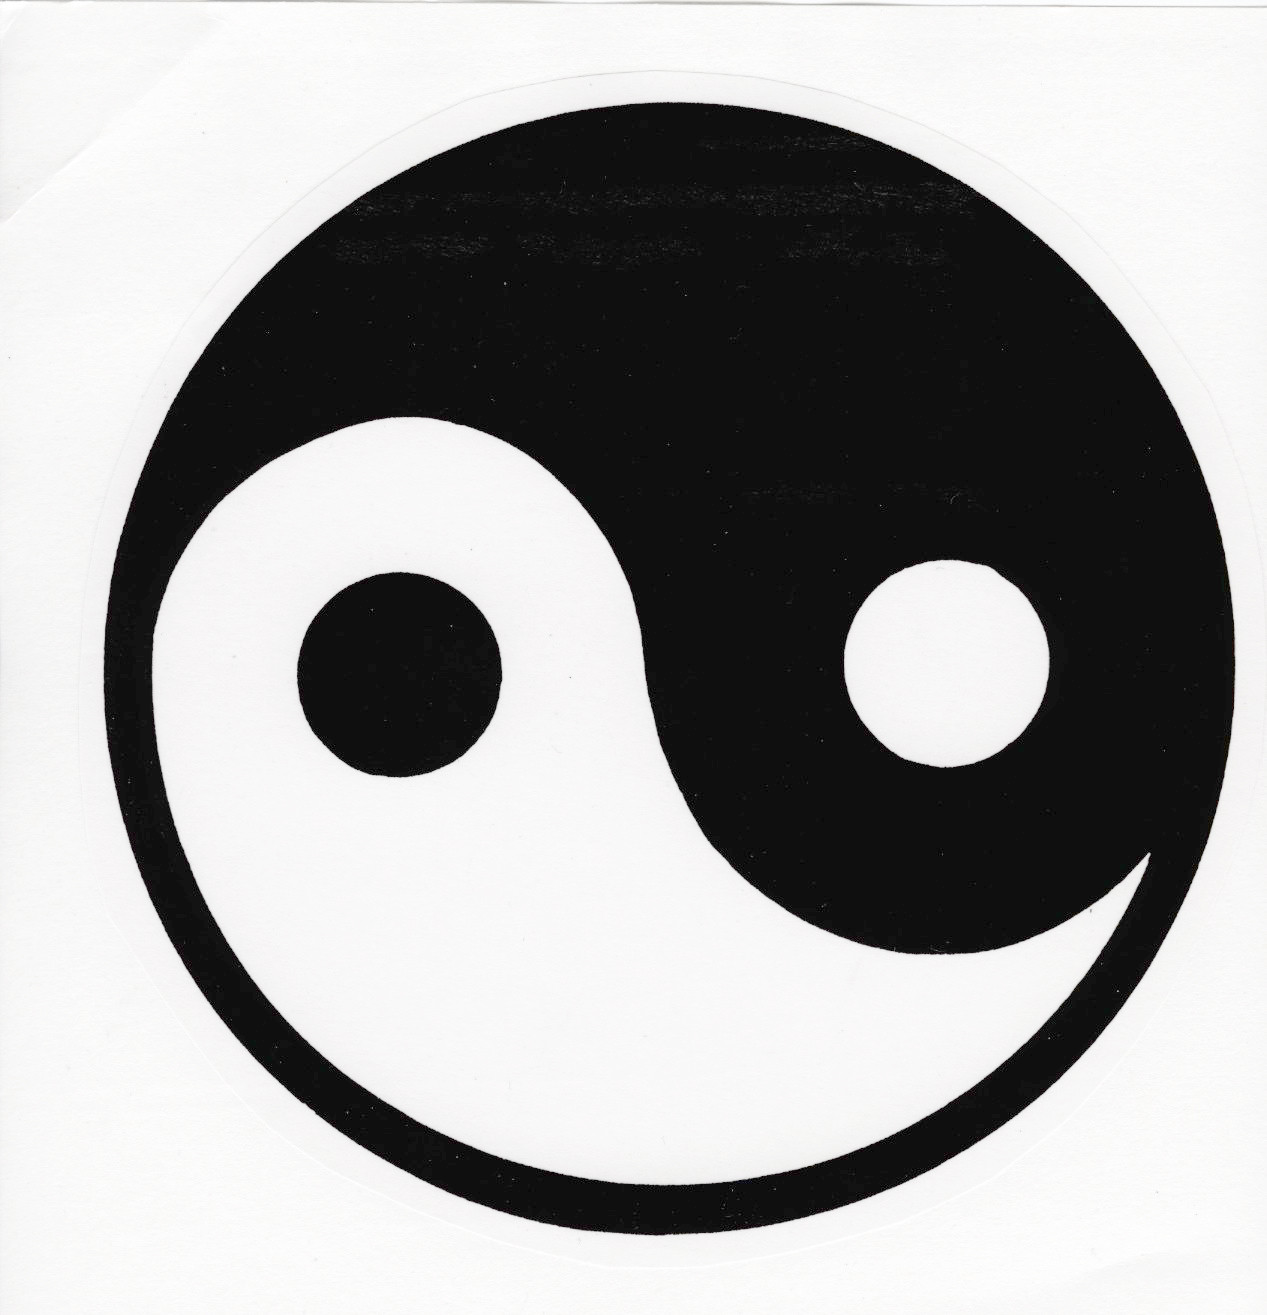 Pictures of ying yang symbol free download best pictures of ying 1267x1315 pictures of ying yang symbol biocorpaavc